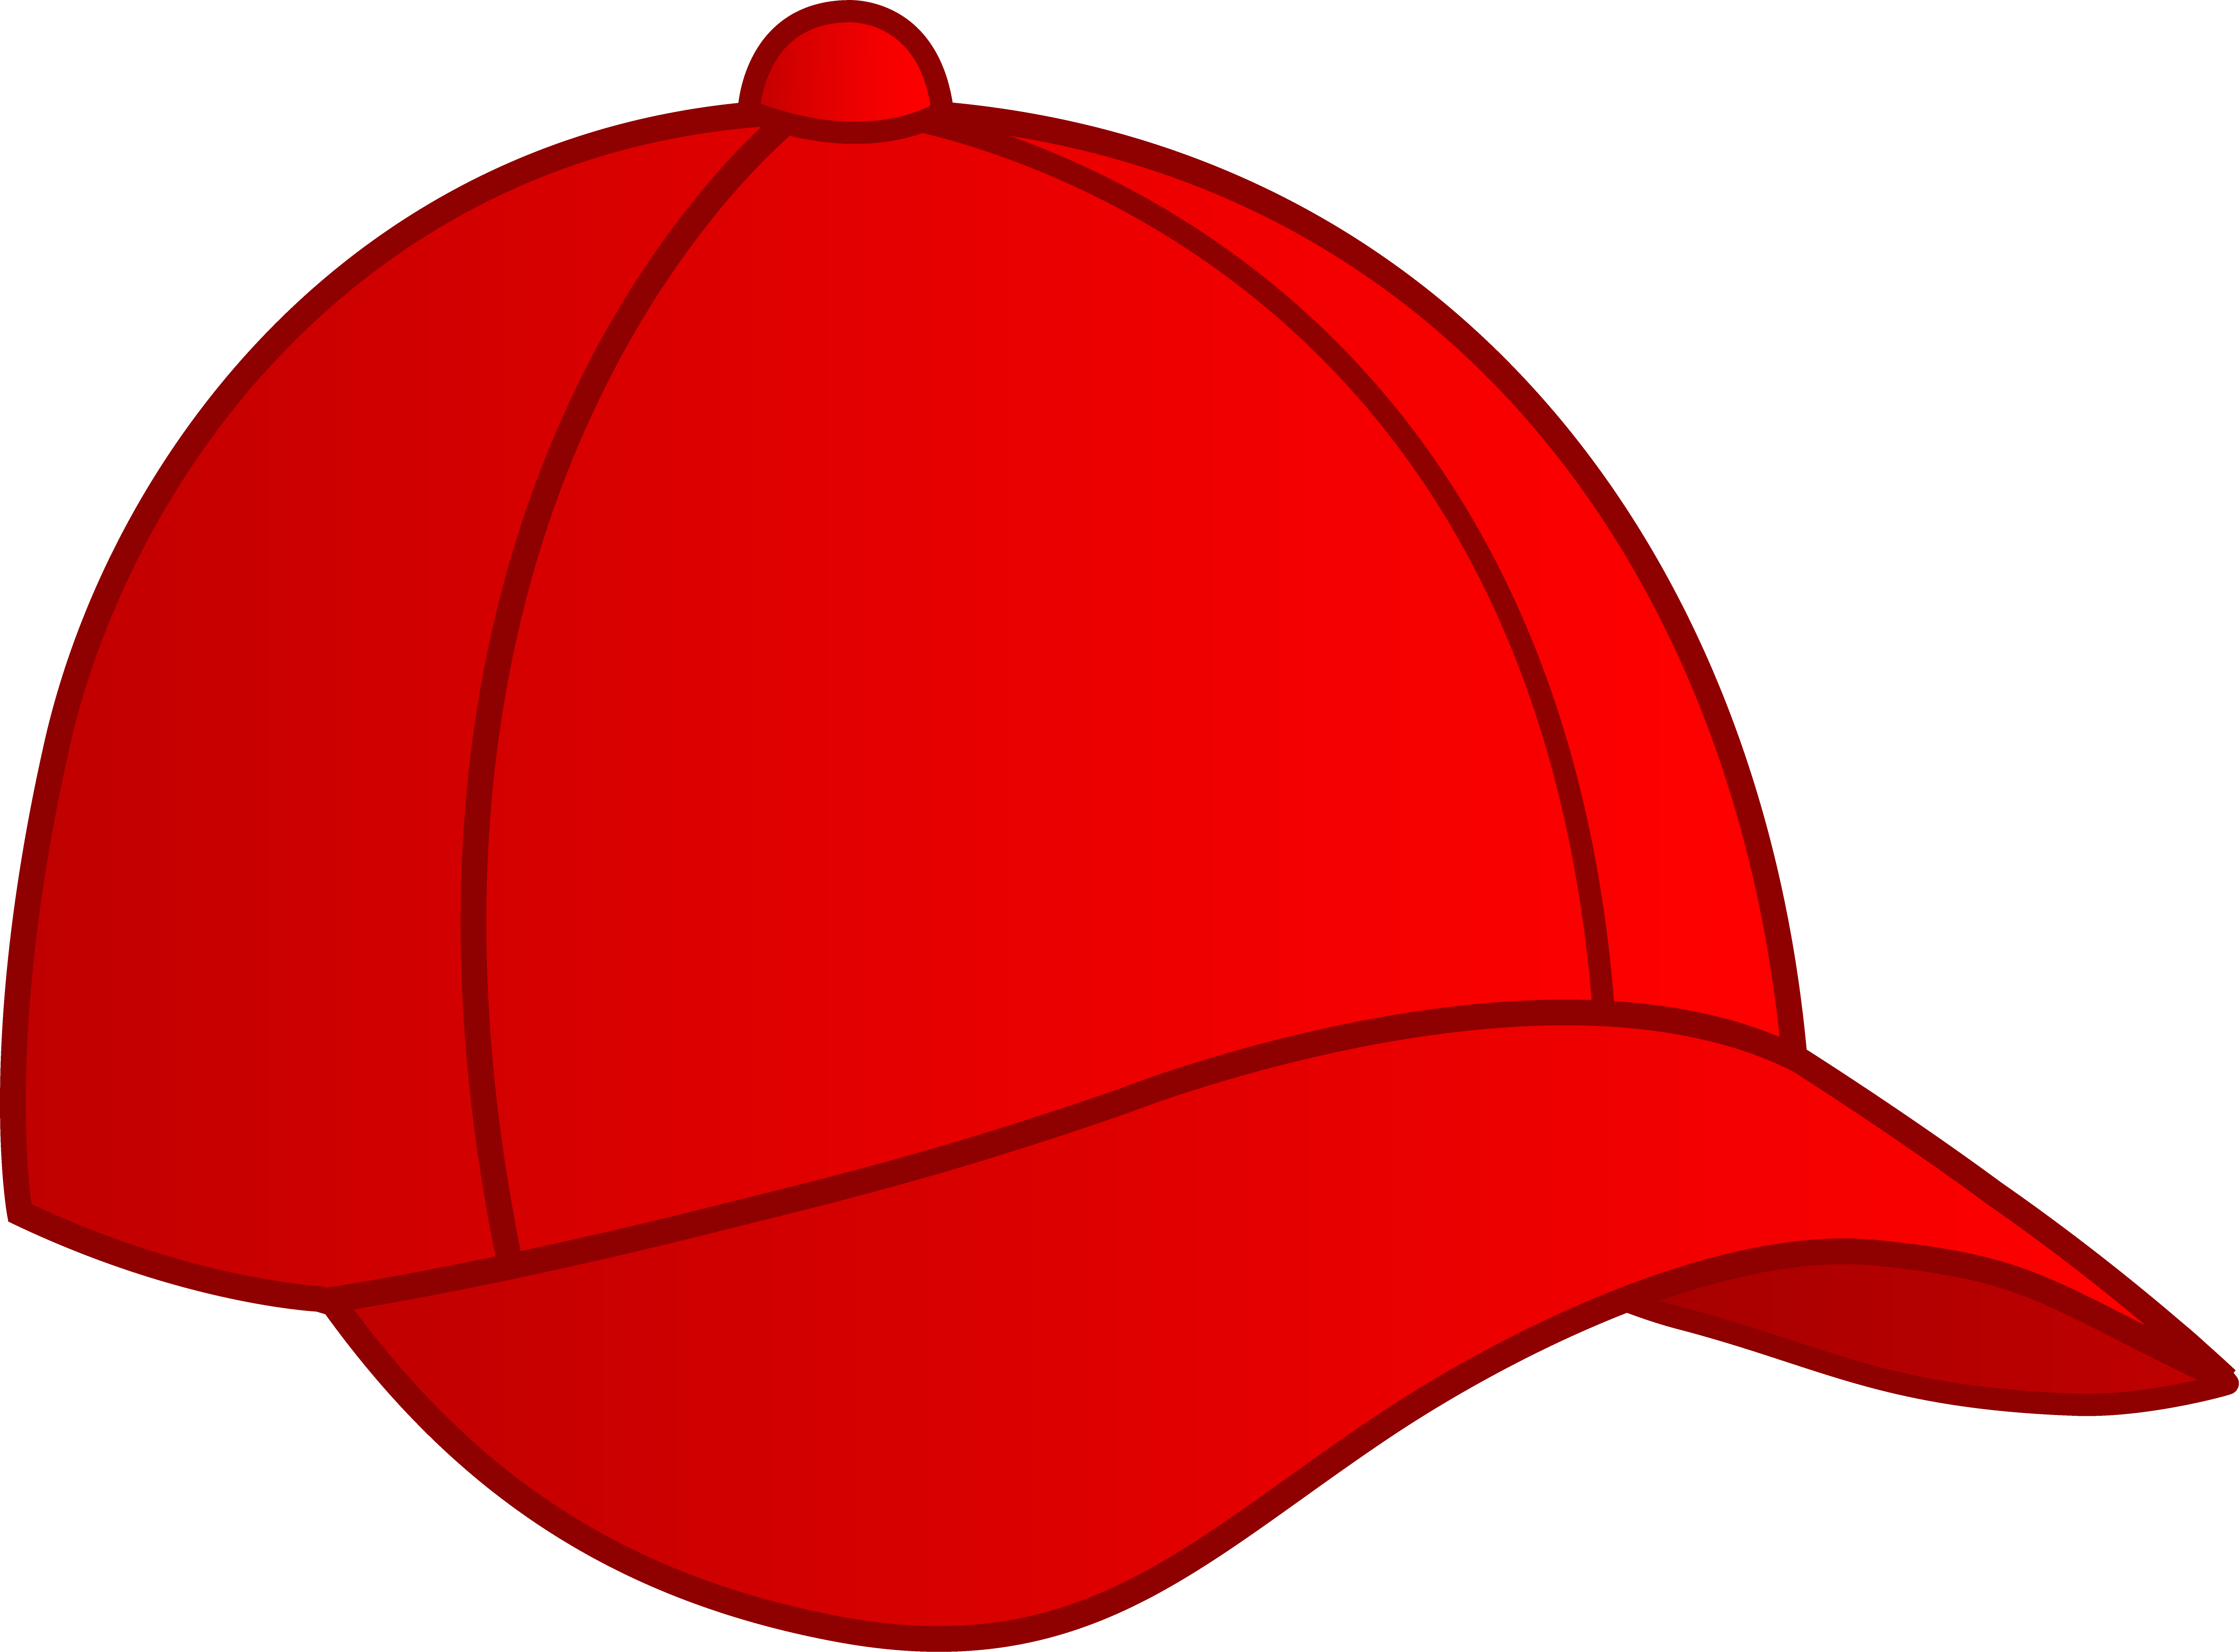 clip art funny hat - photo #38